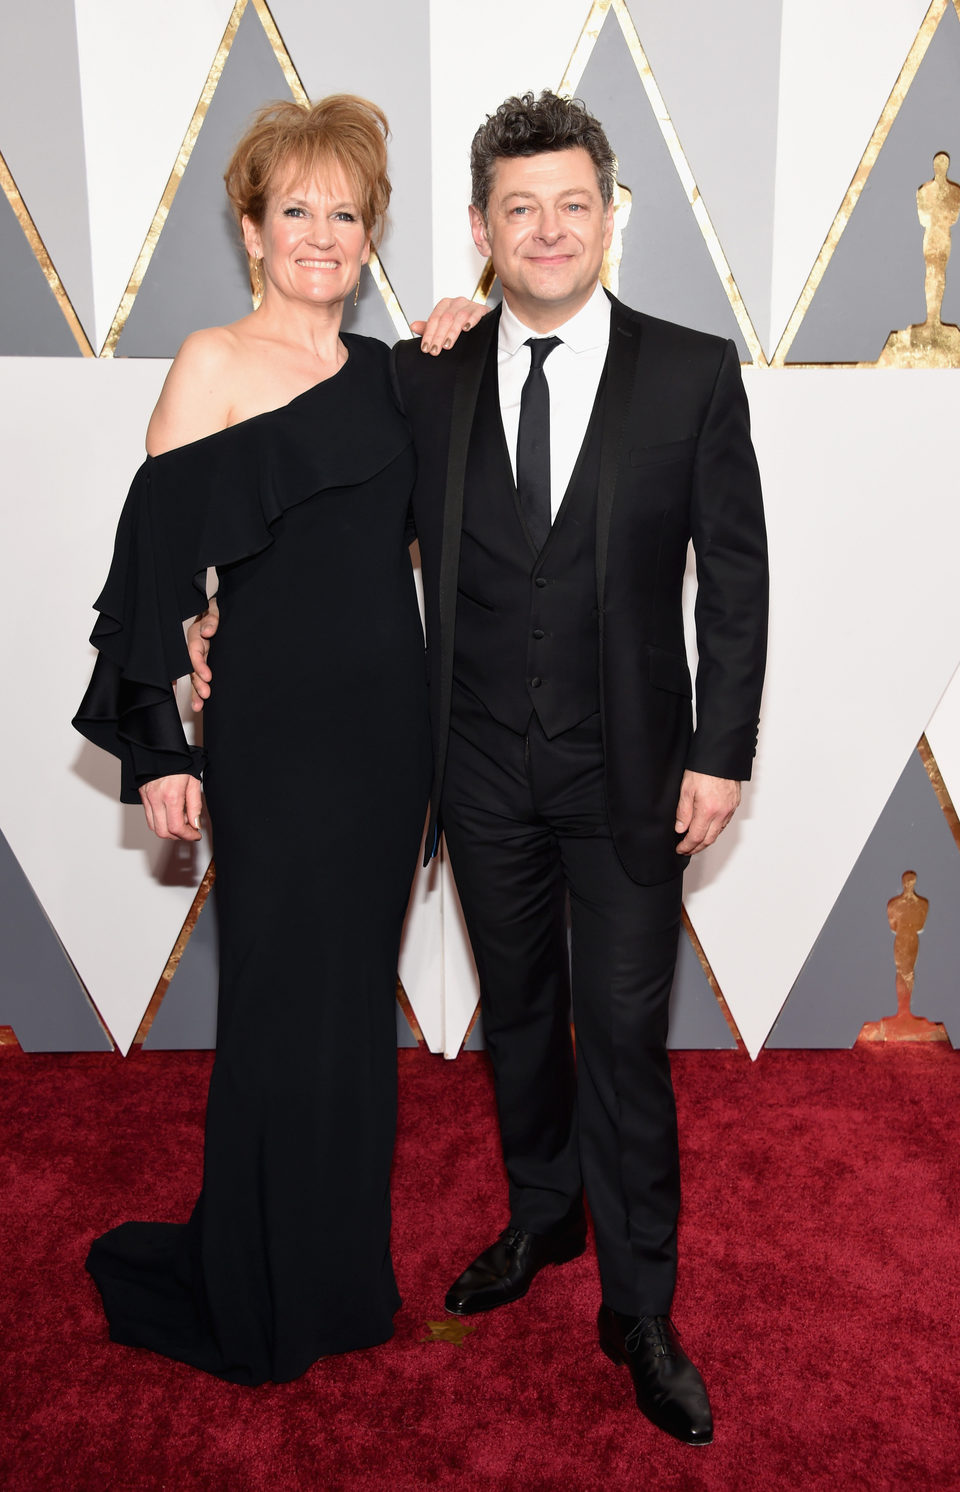 Andy Serkis and Lorraine Ashbourne at the Oscars 2016 red carpet